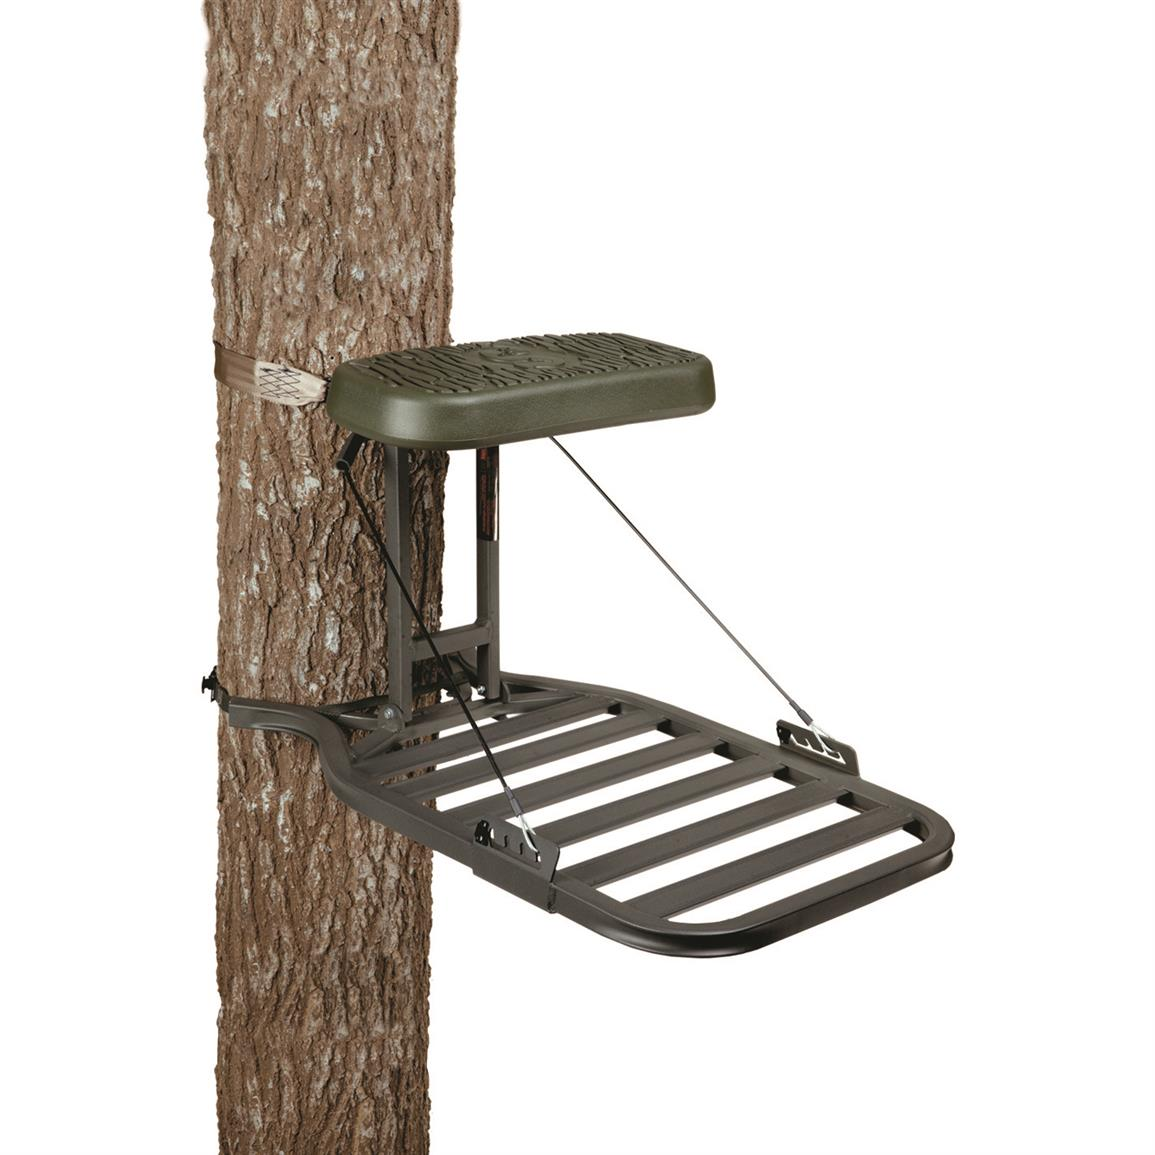 Summit Rsxhawk Hang On Tree Stand 698080 Hang On Tree